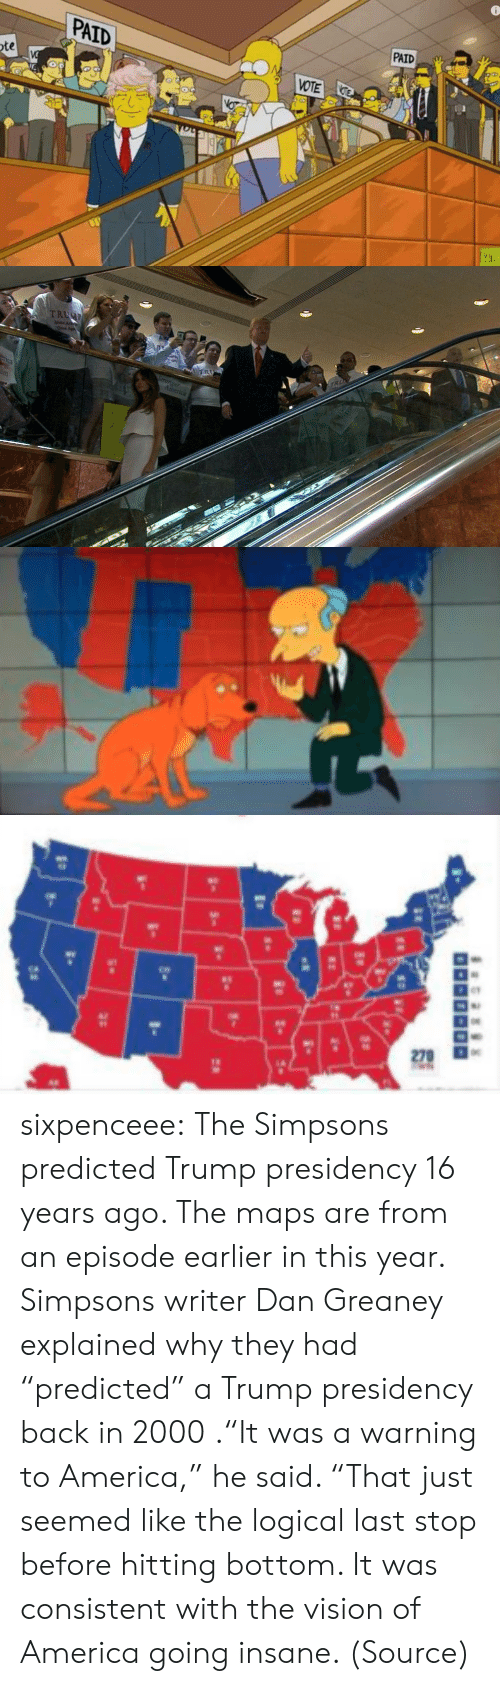 """Going Insane: PAID  PAID  VOTE  te   TRUC  TR  Strorger  America   270  1-  25 sixpenceee:  The Simpsons predicted Trump presidency 16 years ago. The maps are from an episode earlier in this year. Simpsons writer Dan Greaney explained why they had """"predicted"""" a Trump presidency back in 2000 .""""It was a warning to America,"""" he said. """"That just seemed like the logical last stop before hitting bottom. It was consistent with the vision of America going insane. (Source)"""